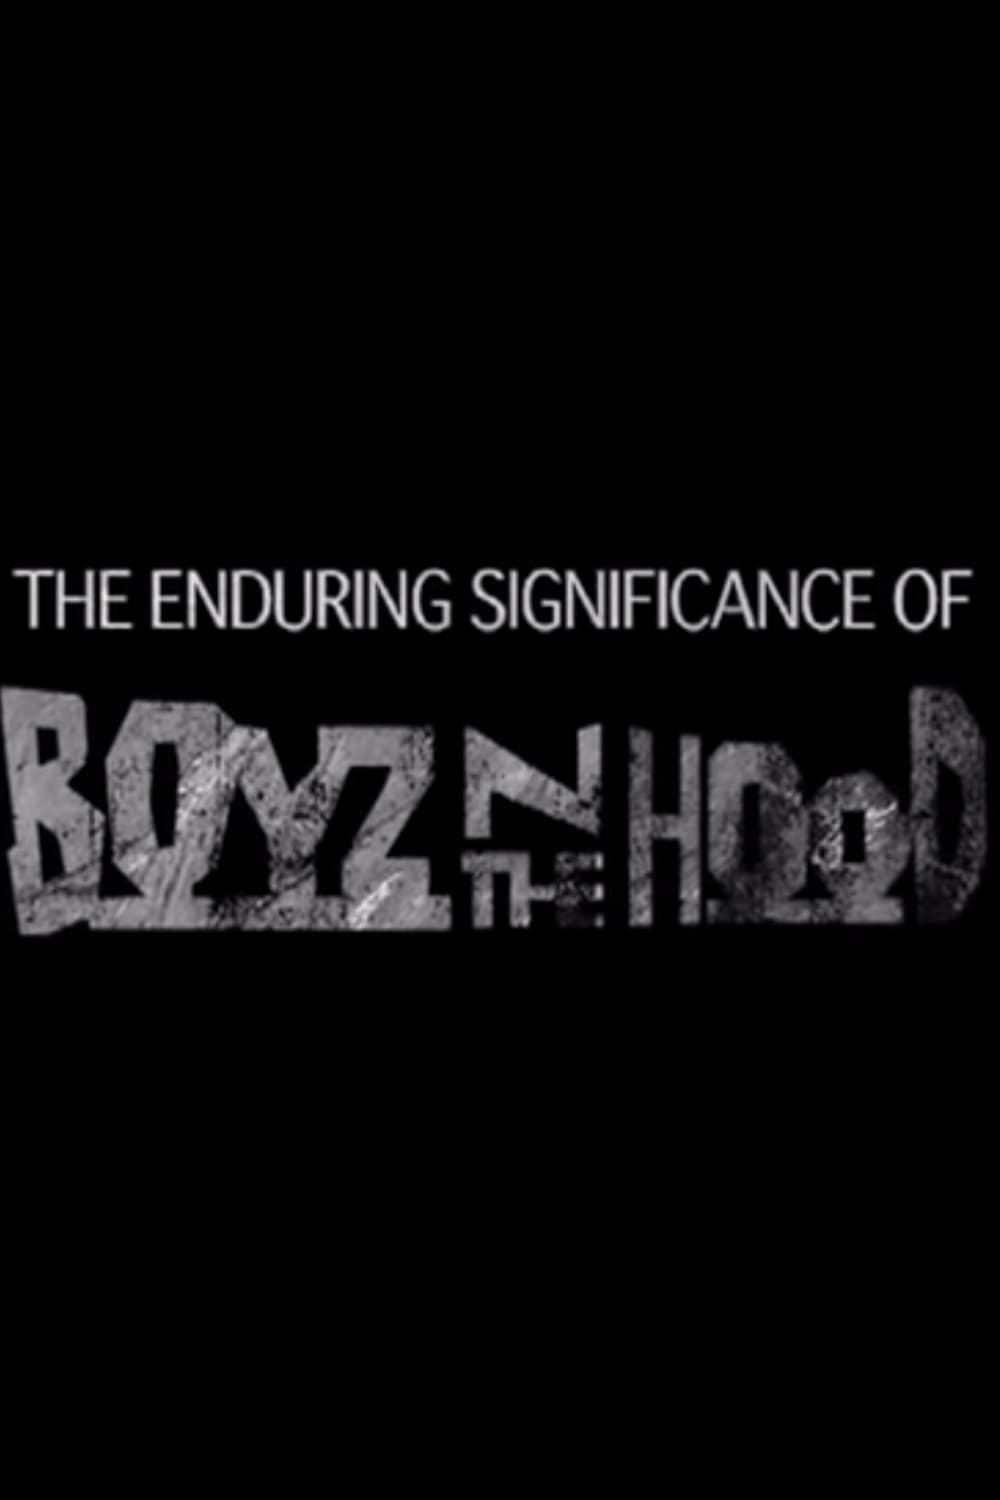 The Enduring Significance of Boyz n the Hood (2011)